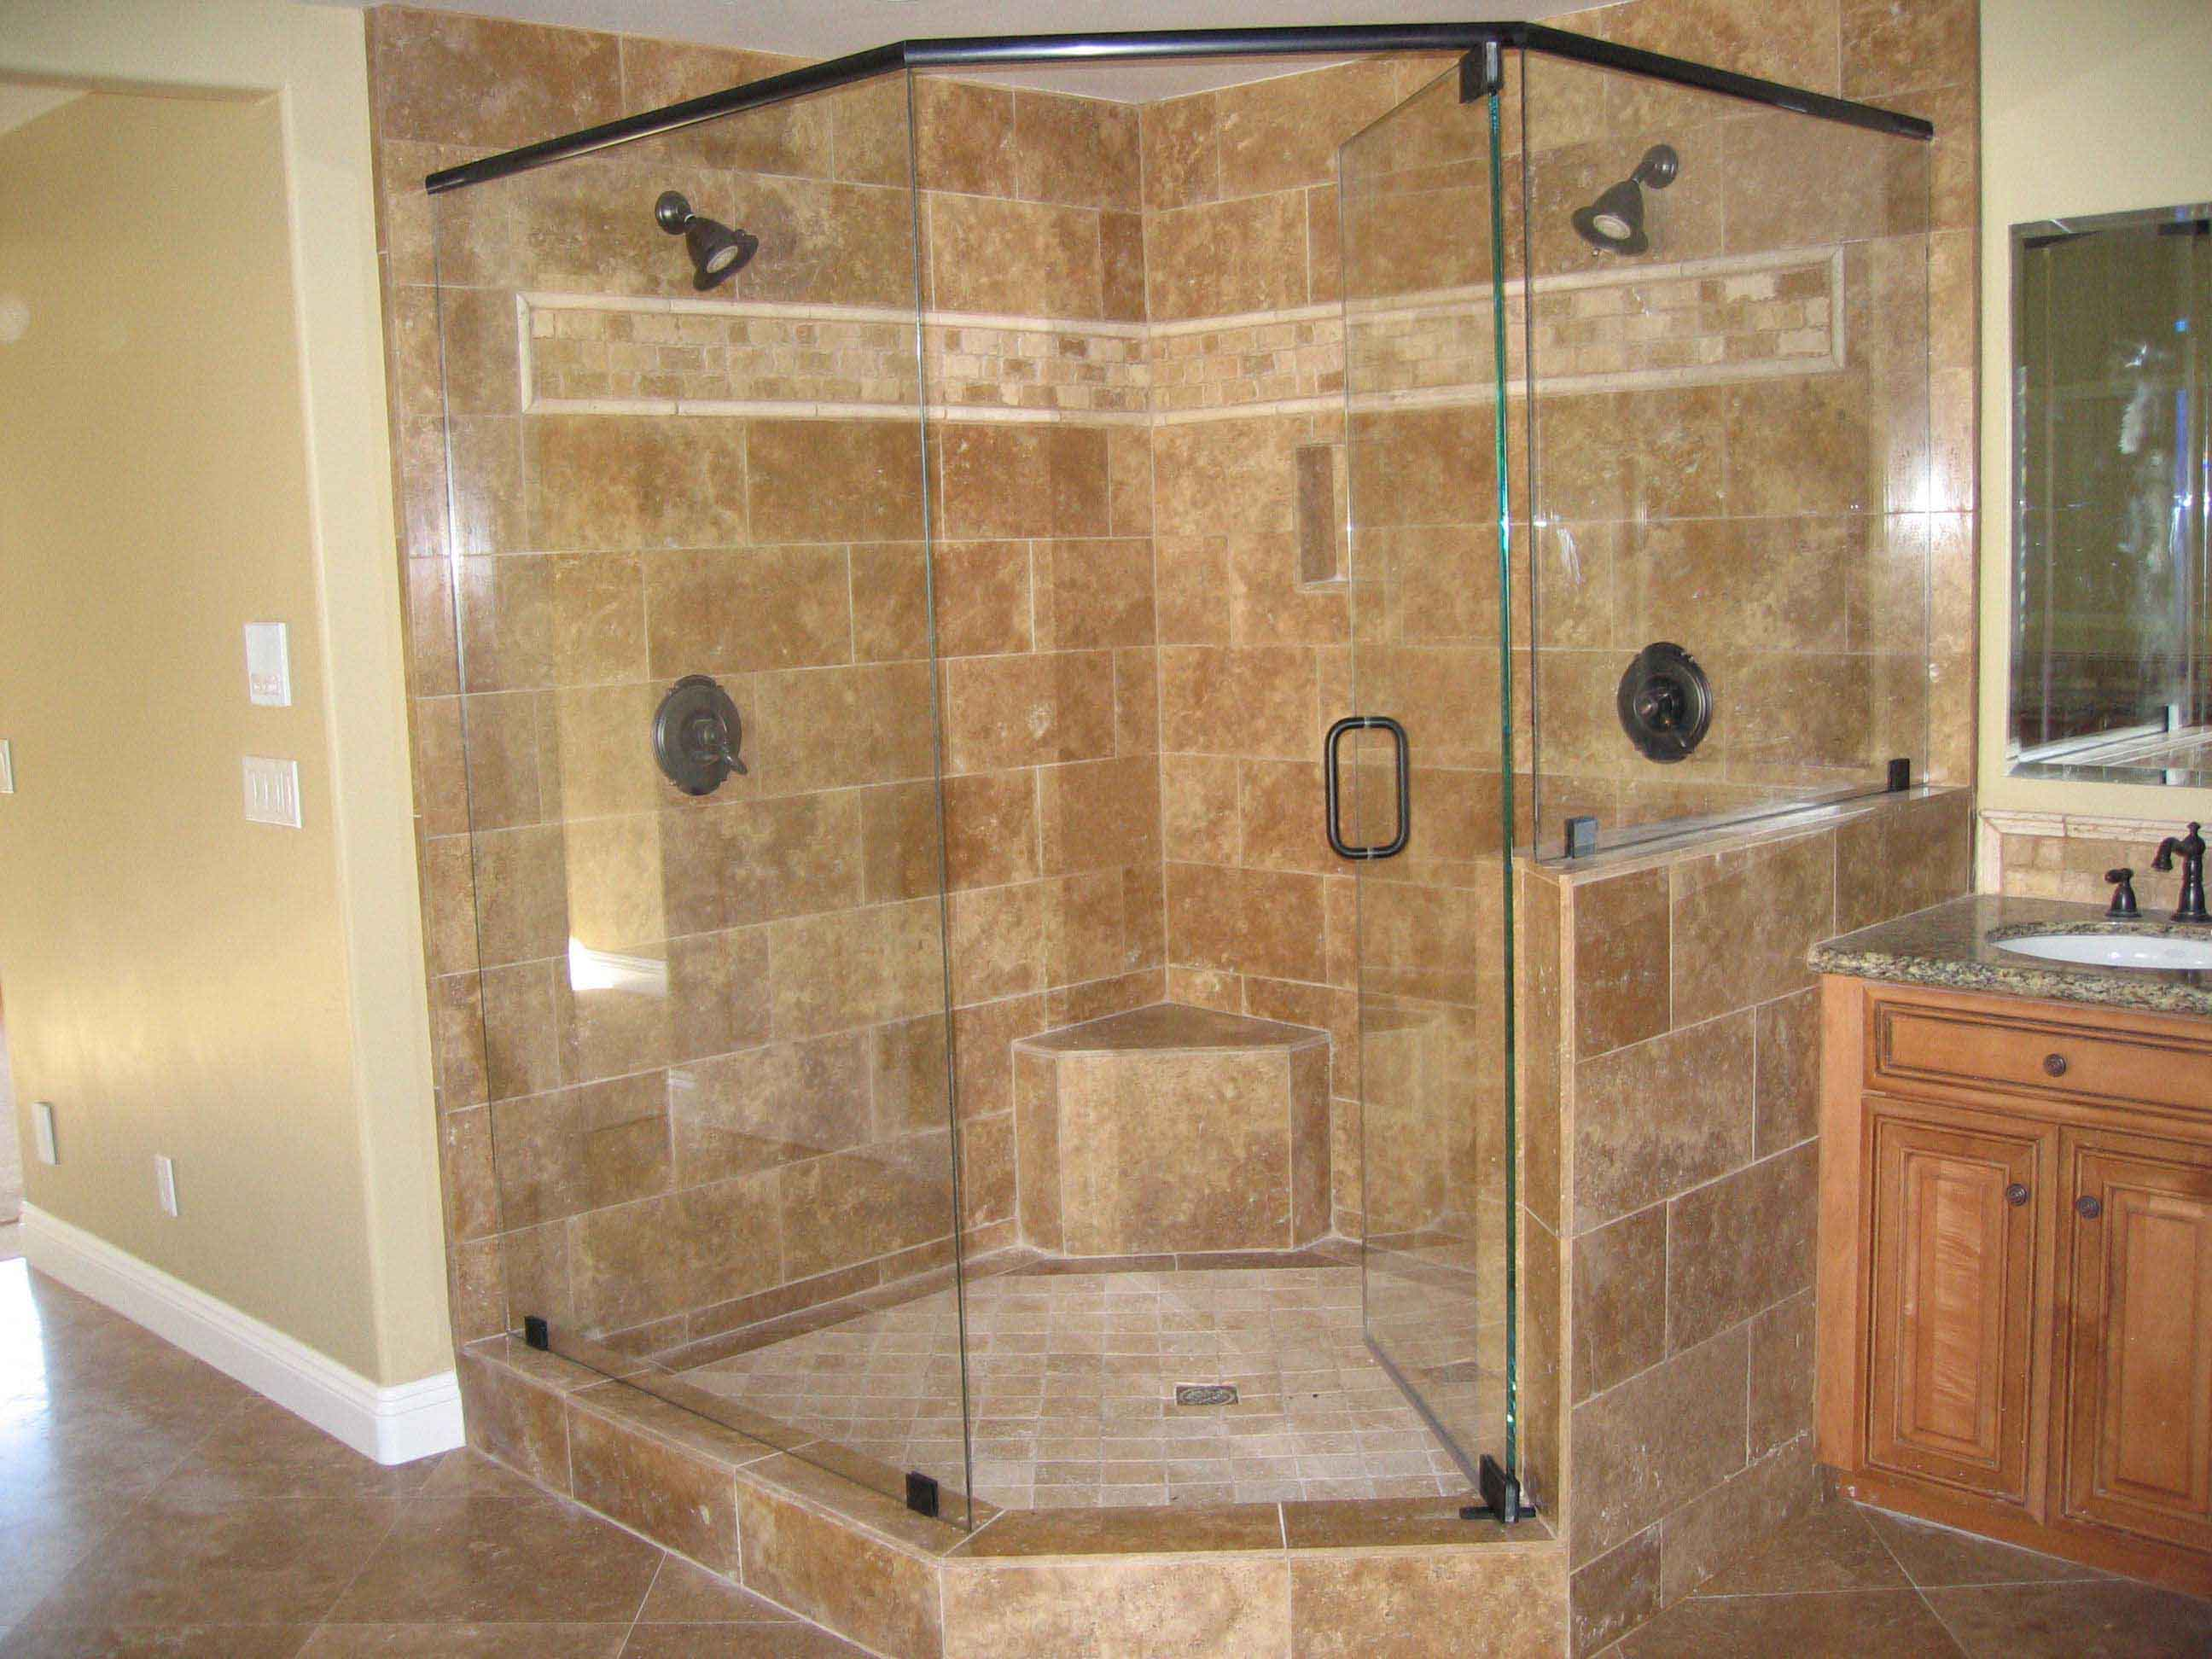 42 Inch Corner Shower Home Design Plan